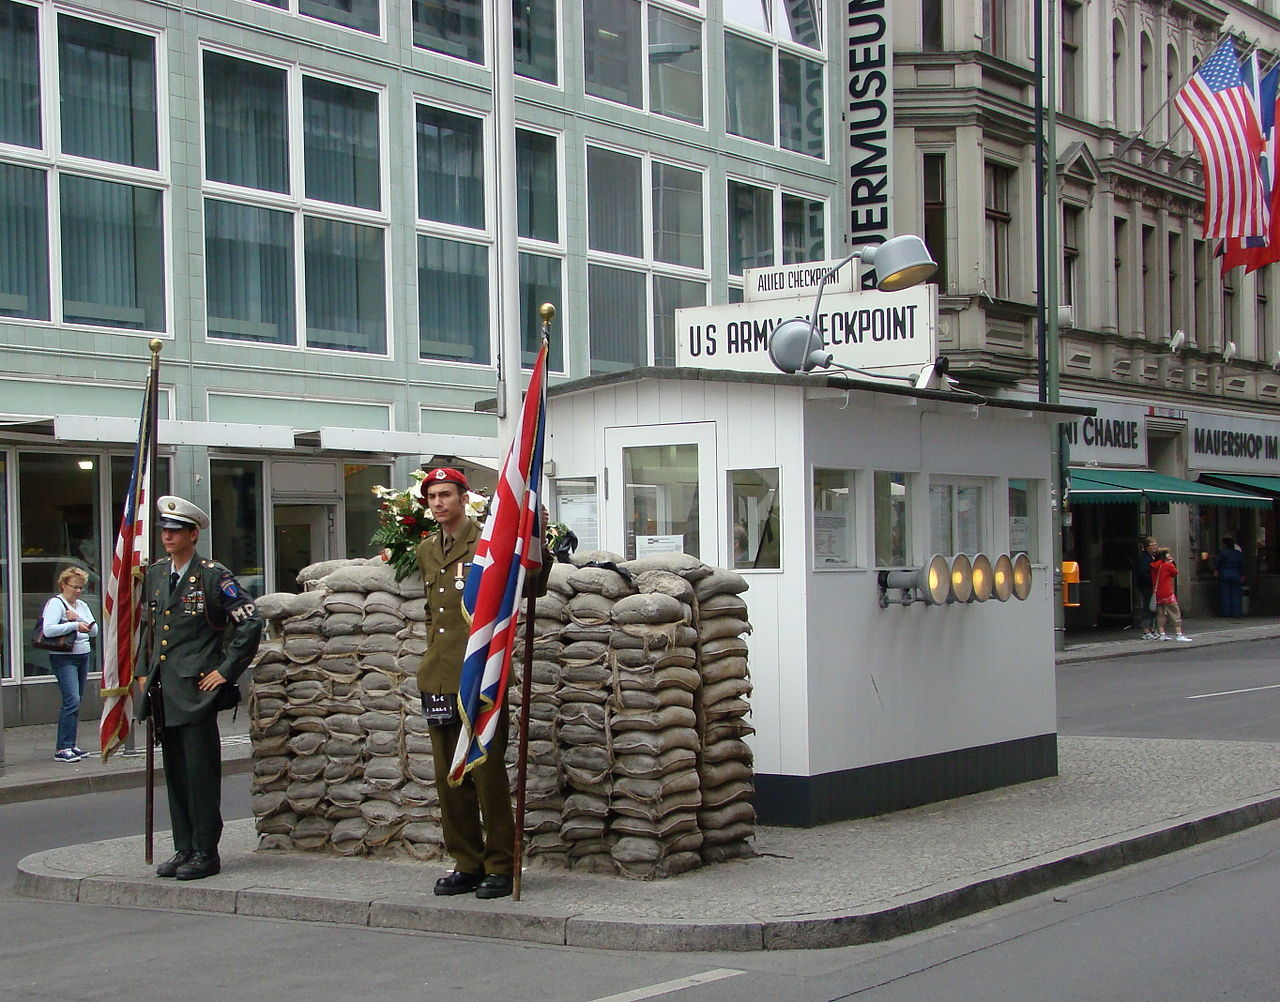 A Brief History Of Checkpoint Charlie Berlin